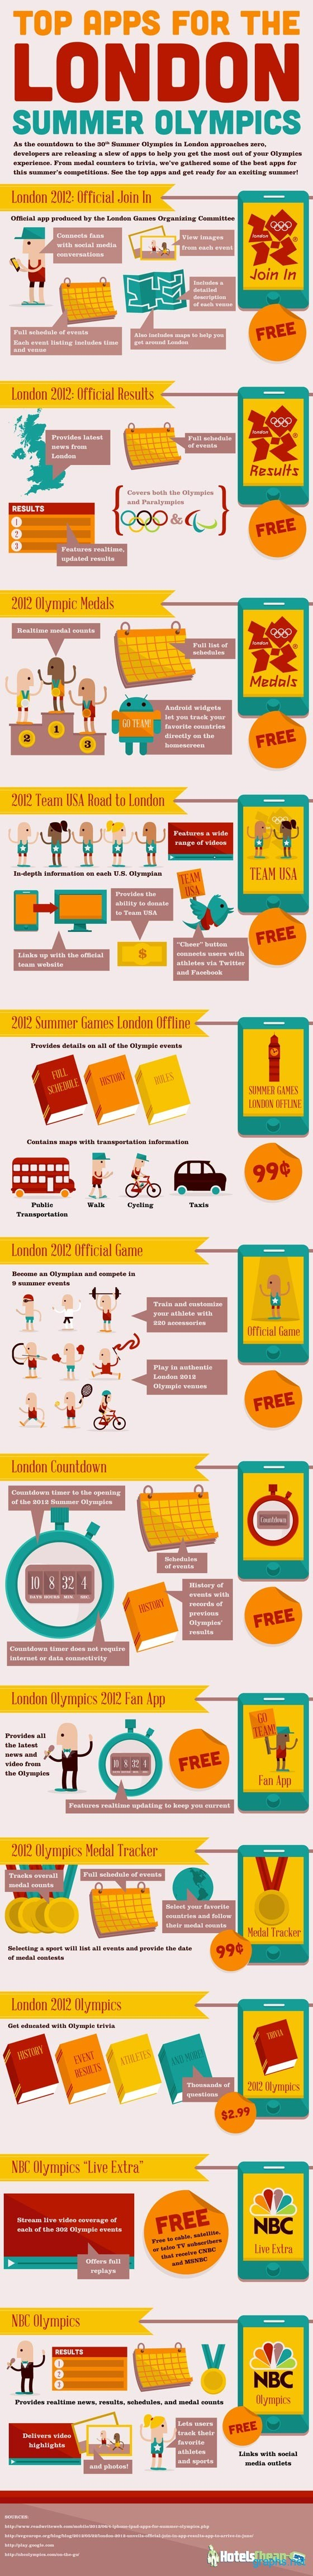 London Summer Olympics Top Apps